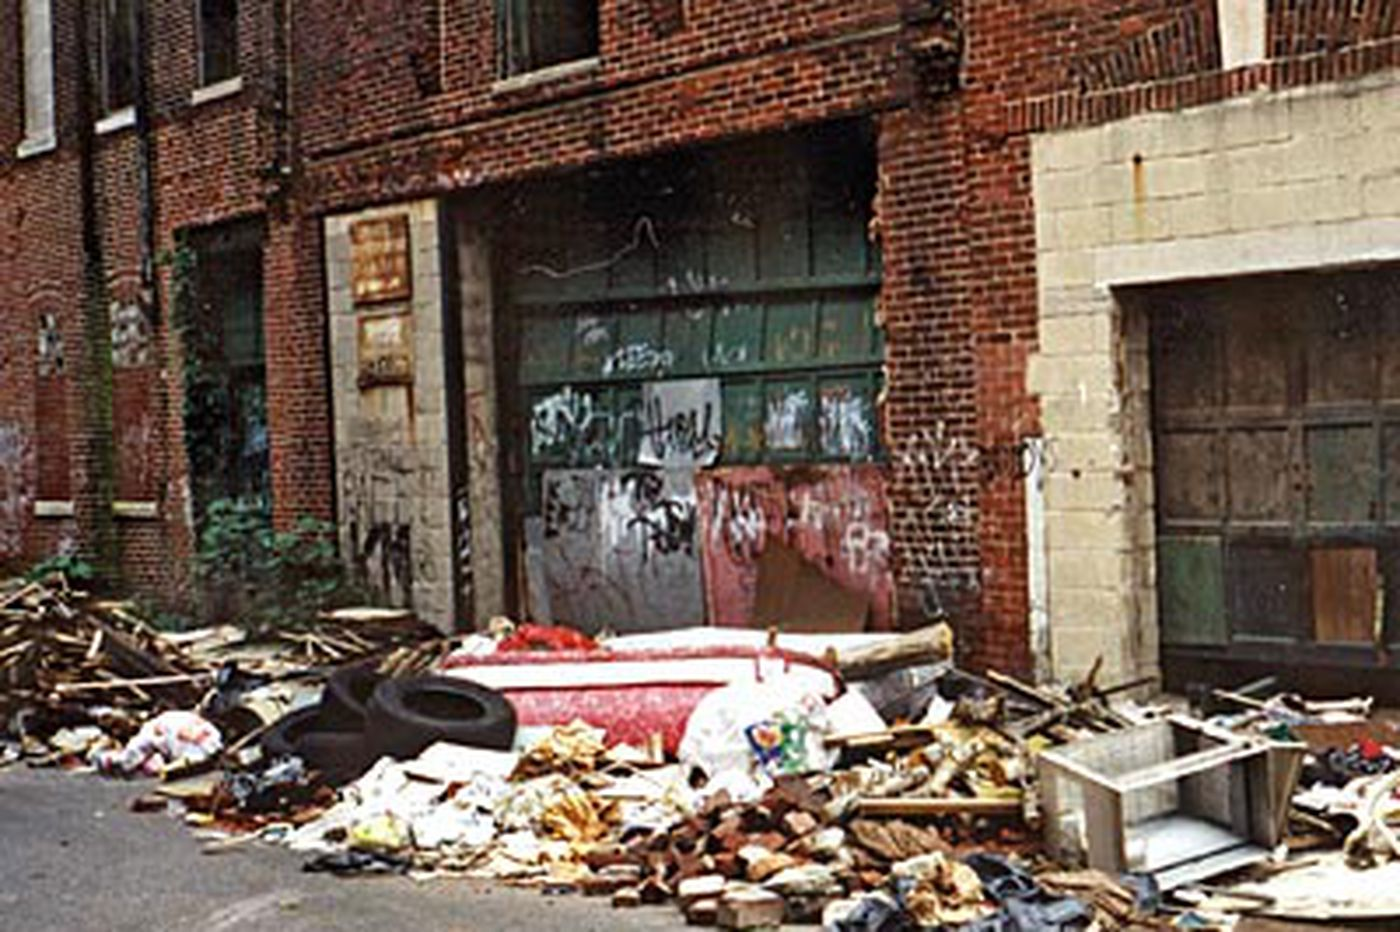 Time expiring on $45M to eradicate Phila. blight